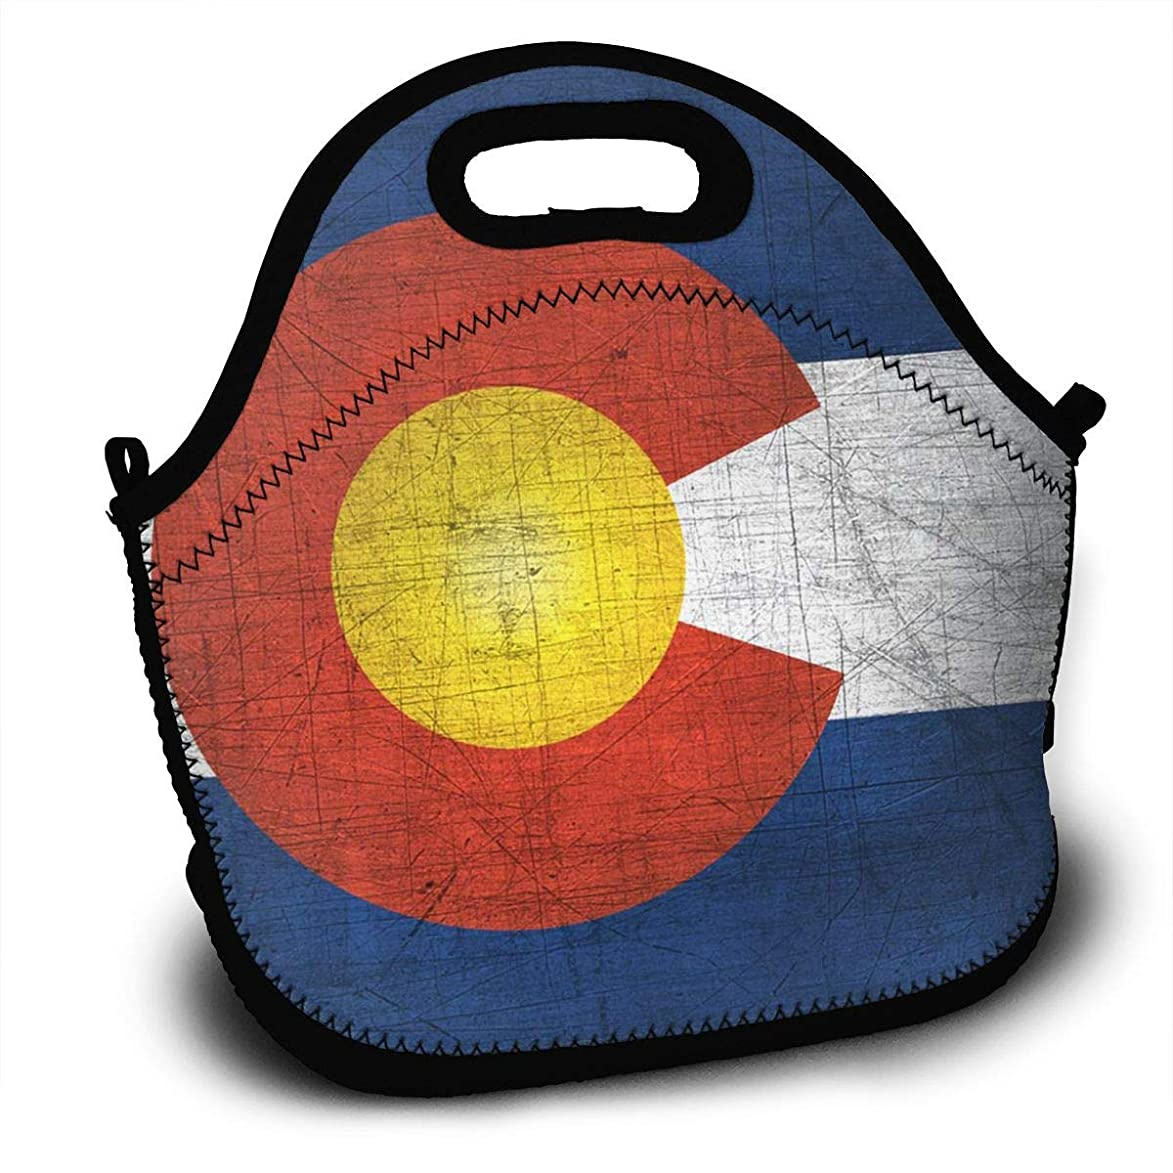 Retro Colorado State Flag4 Lunch Bag Tote Bag Patterned Neoprene Lunch Box Portable Lunch Organizer With Zipper For Work Travel Picnic Beach jbd062643017370